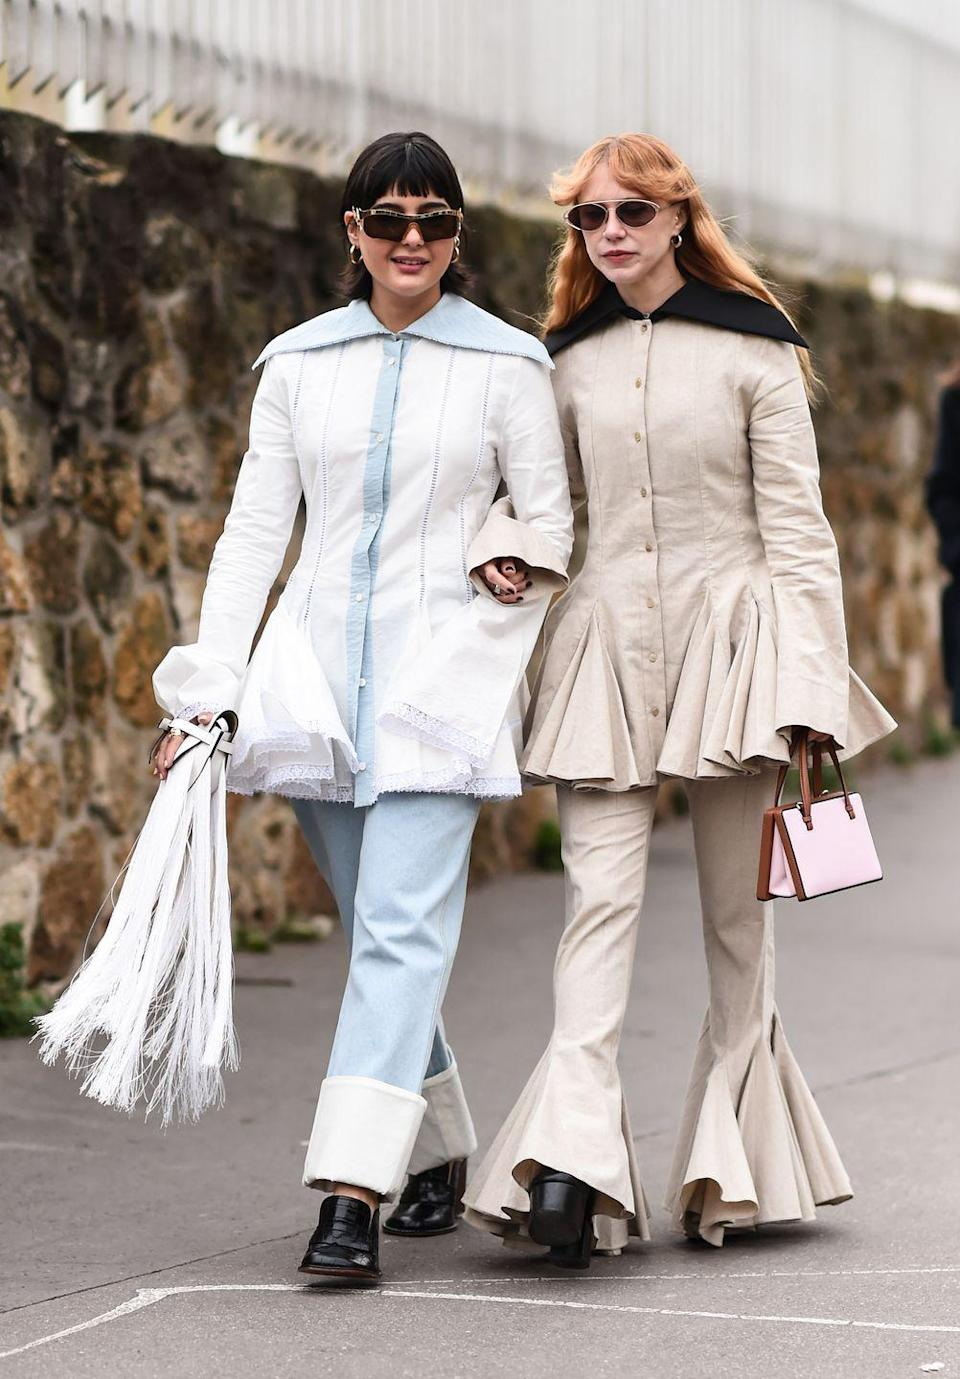 <p>It's no secret that the '70s are back in a big way, and if you haven't adopted the grooviest season into your wardrobe yet, then we're suggesting you start by adding some fringe. Anything that moves with us fits right into our wardrobes. This trend is fun, flirty, and perfect for winter.</p>